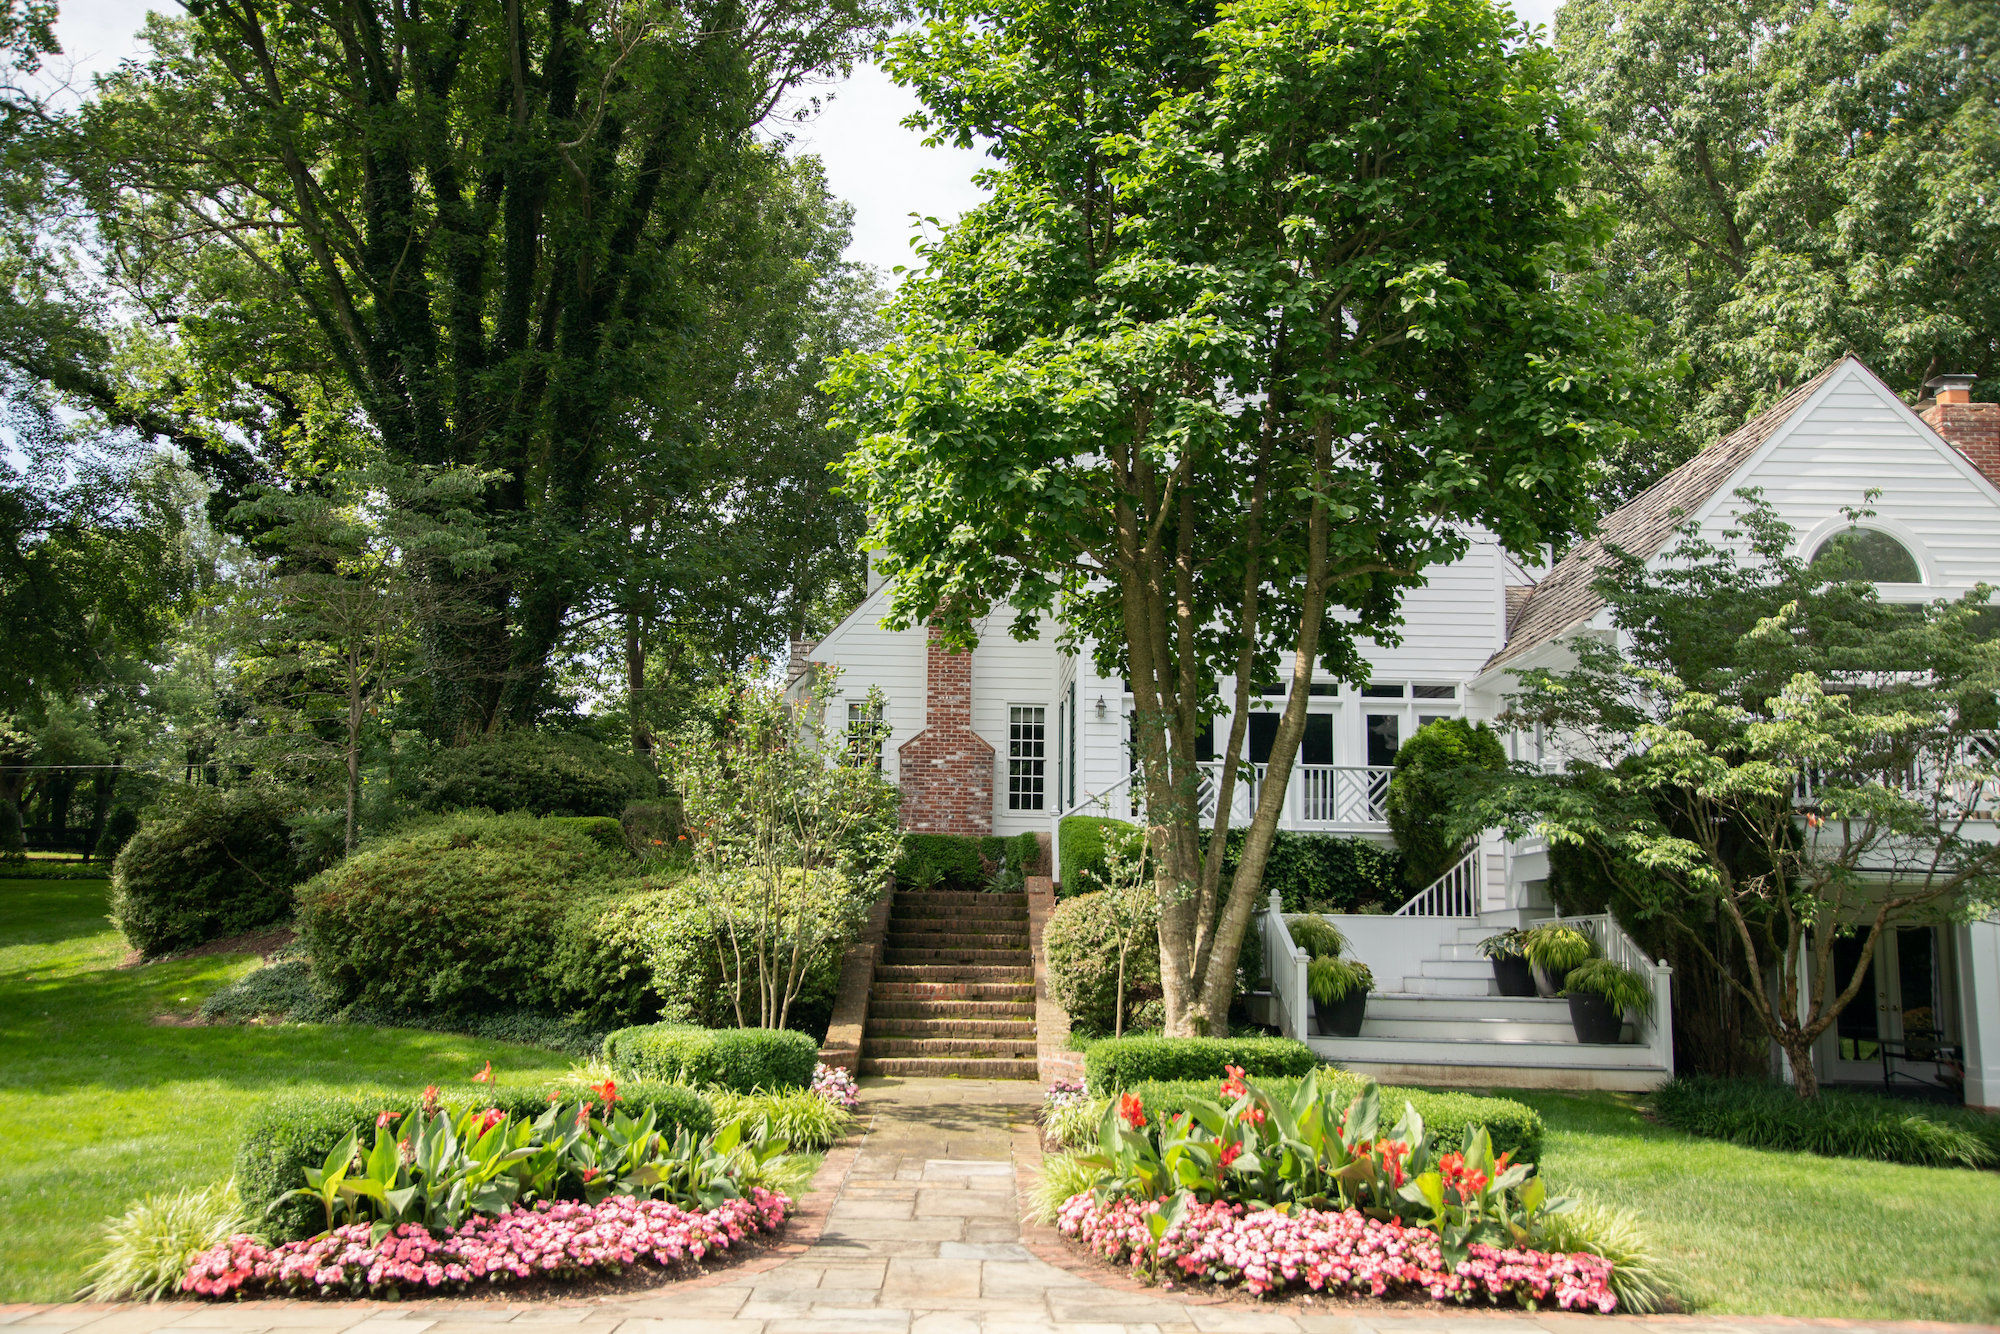 Spring landscaping with blooming flowers and green grass Reston Leesburg Northern Virginia